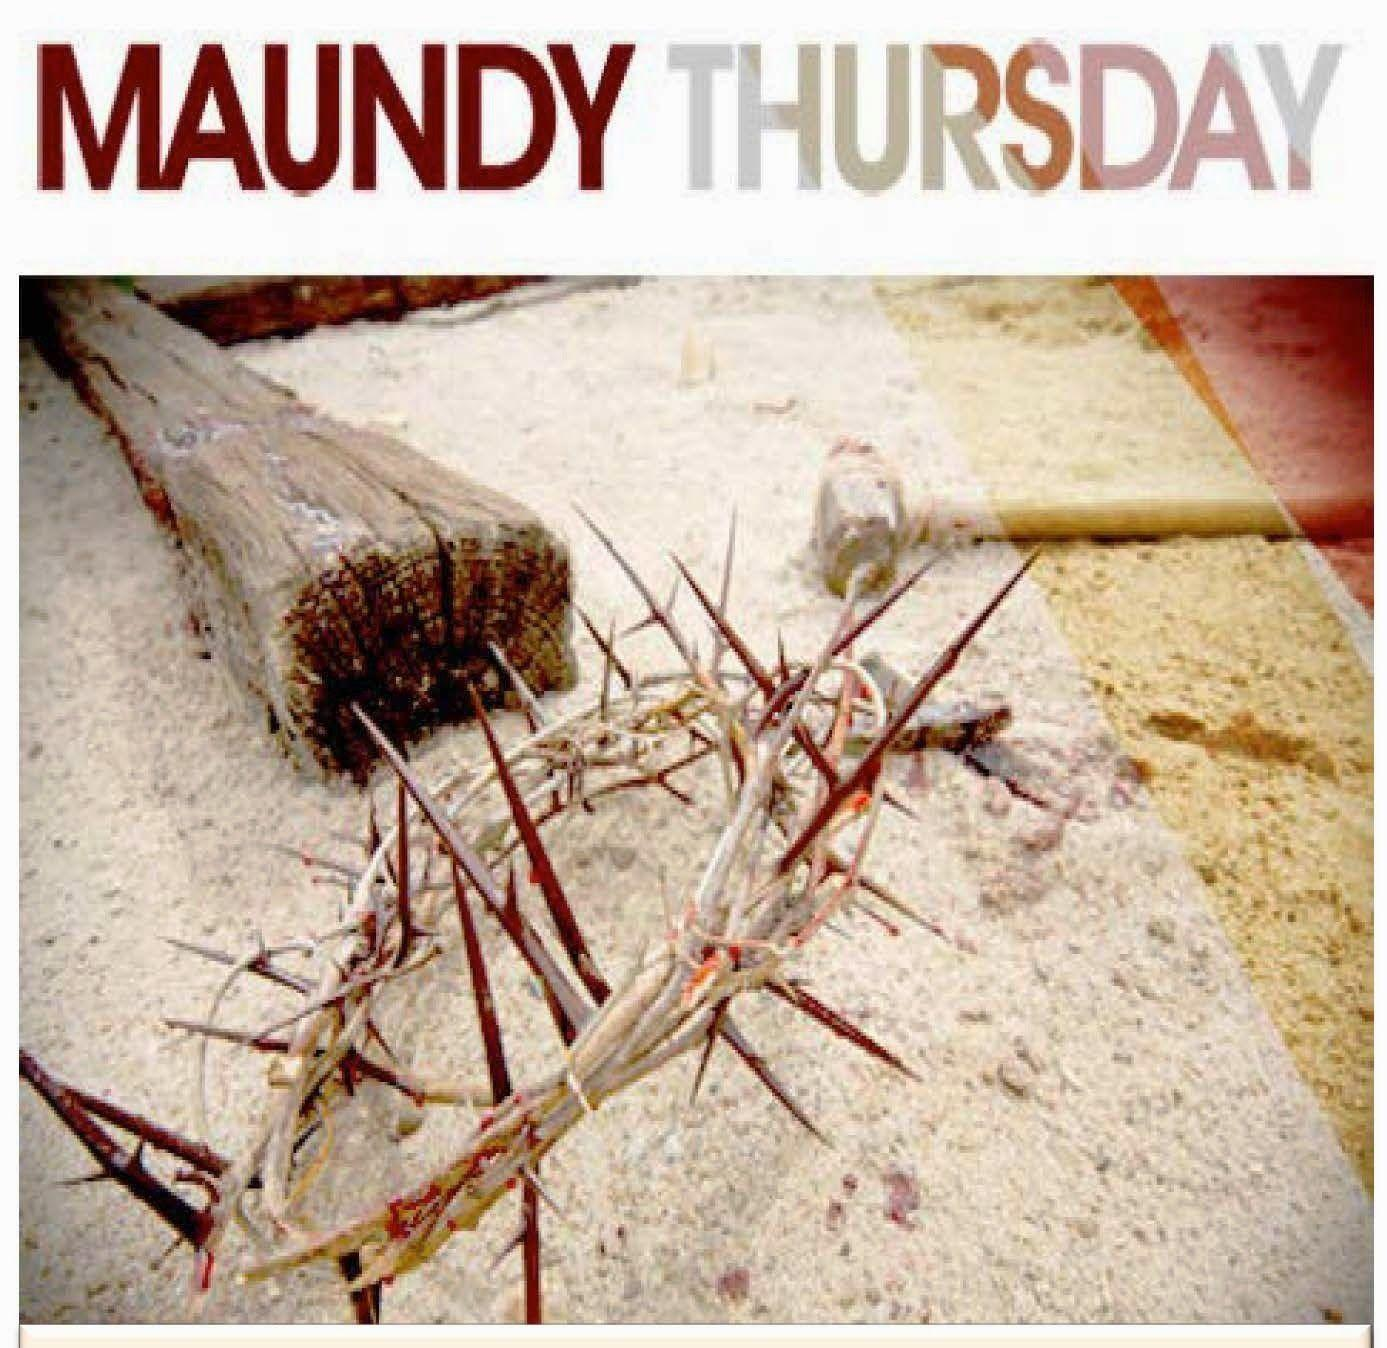 Maundy Thursday Service with Holy Communion